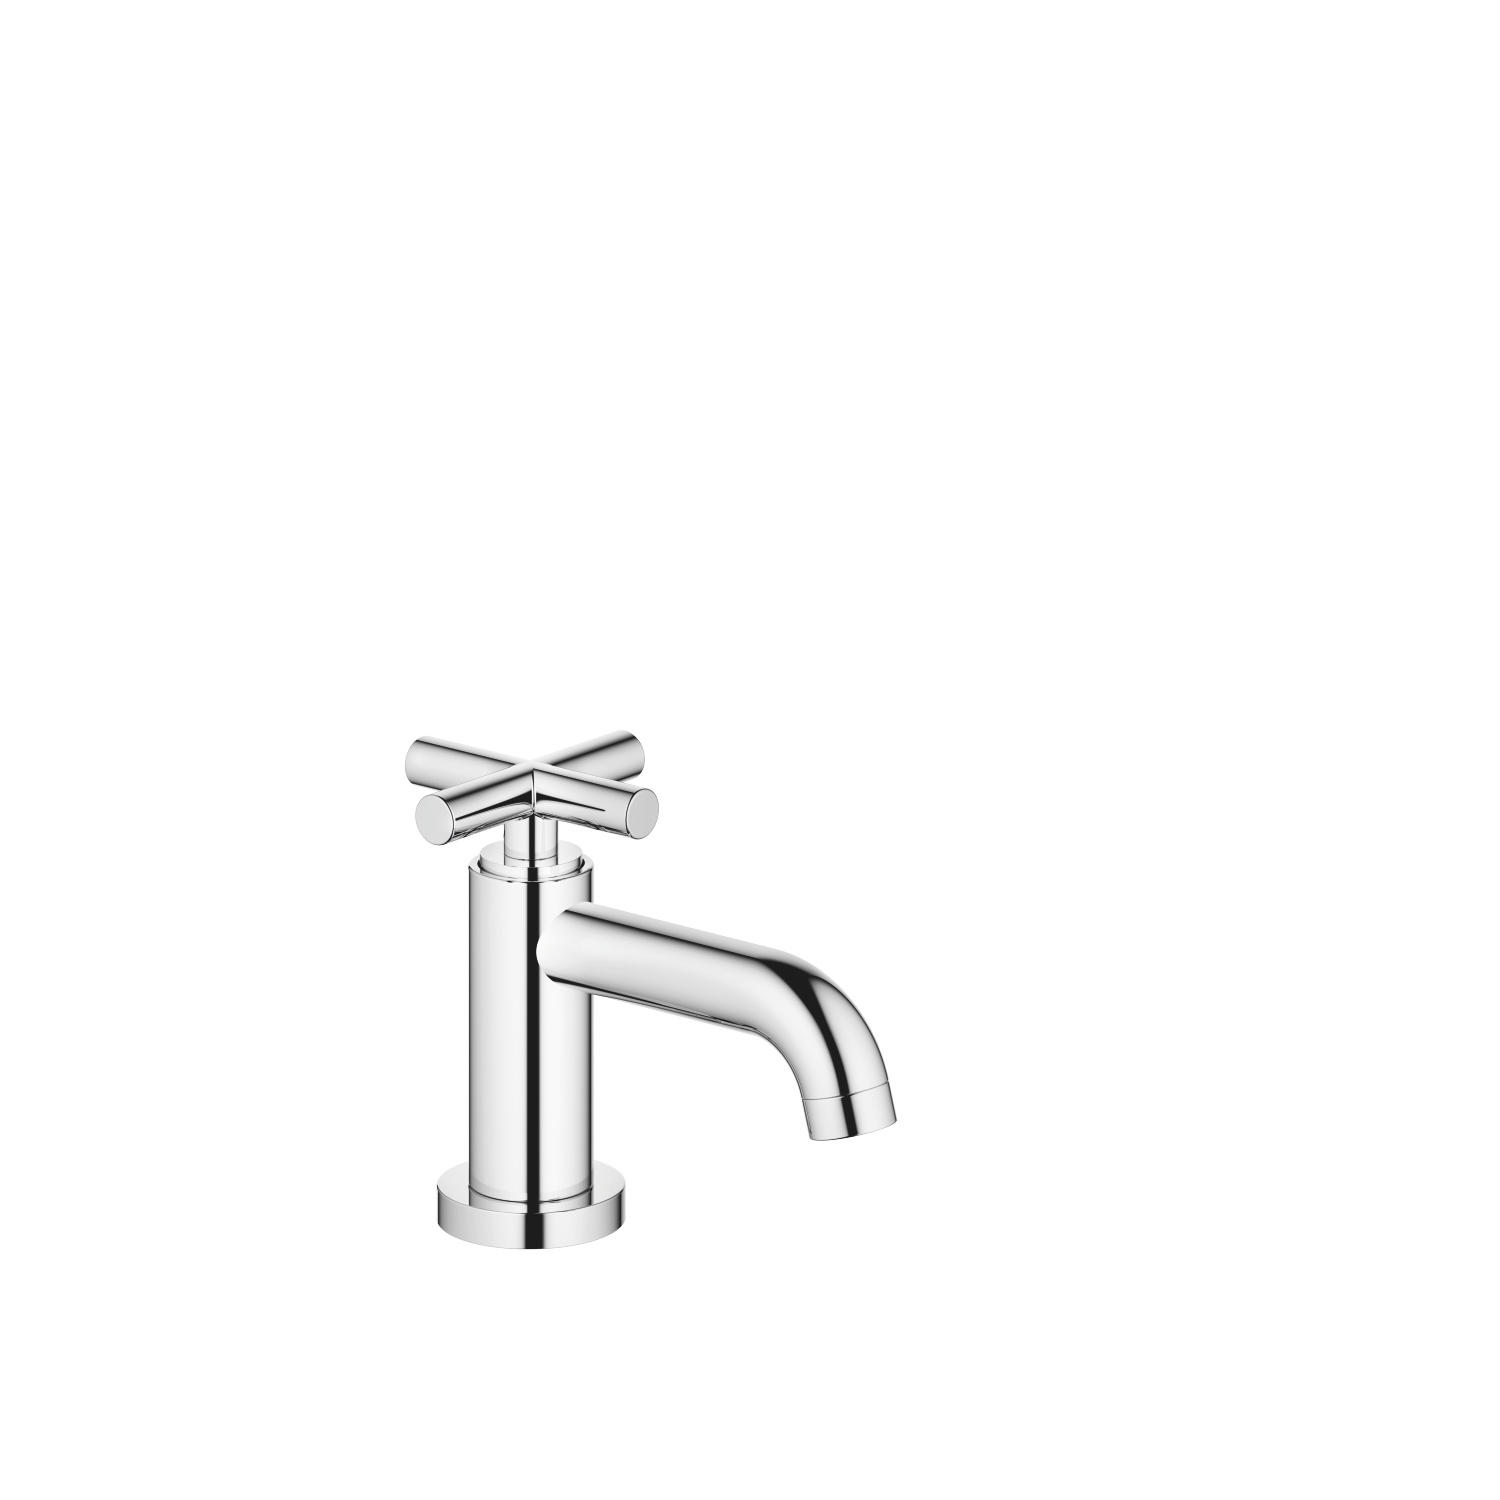 Pillar tap cold water - polished chrome - 17 500 892-00